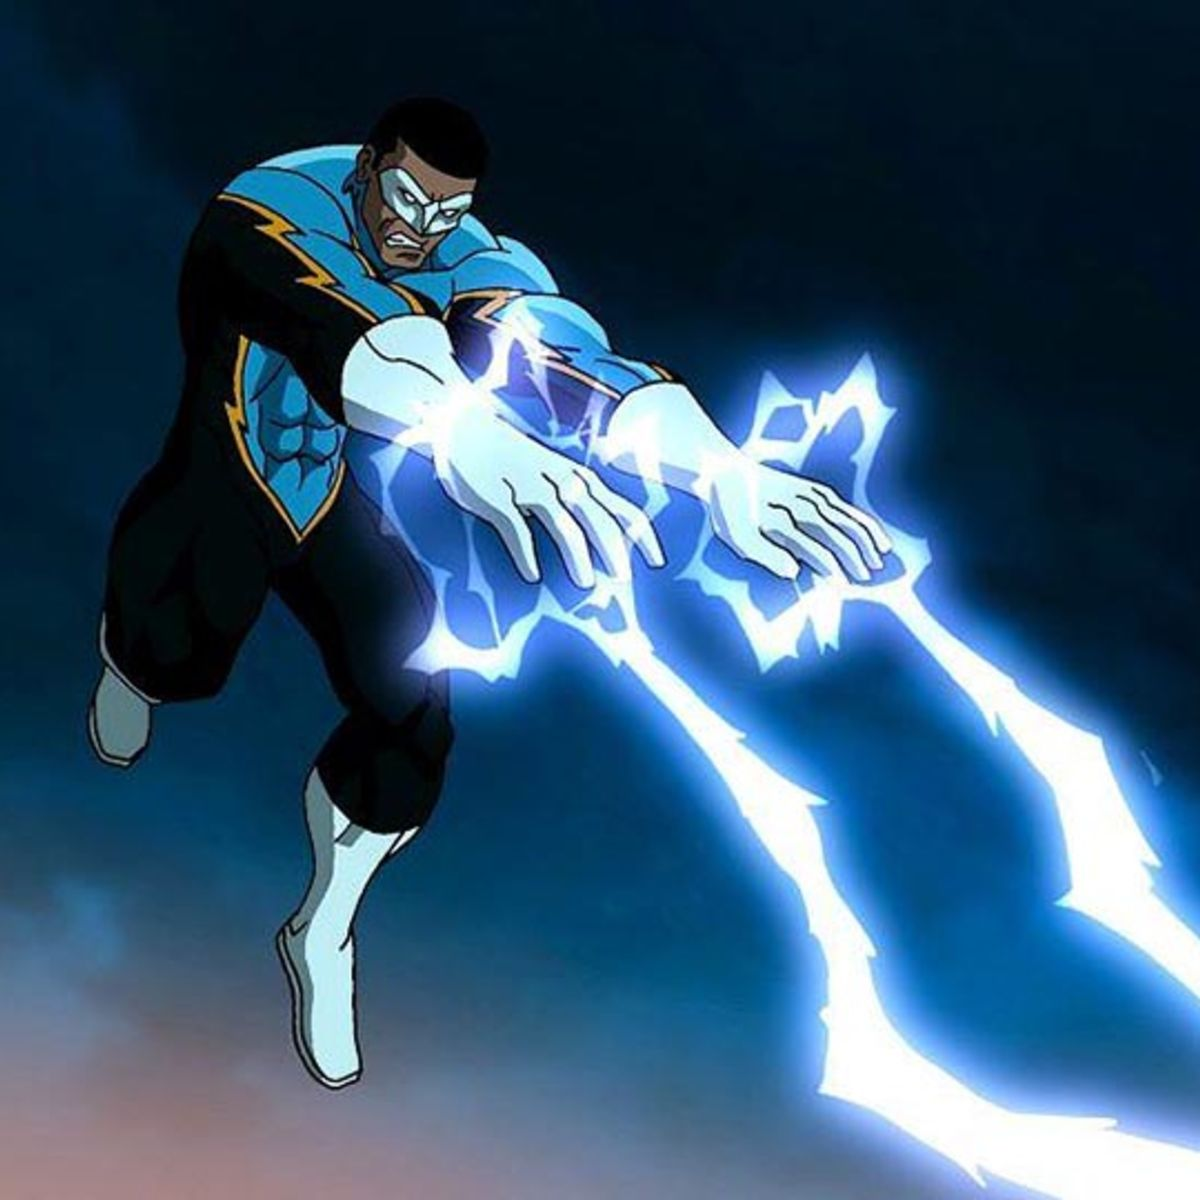 black_lightning_hero_02.jpg